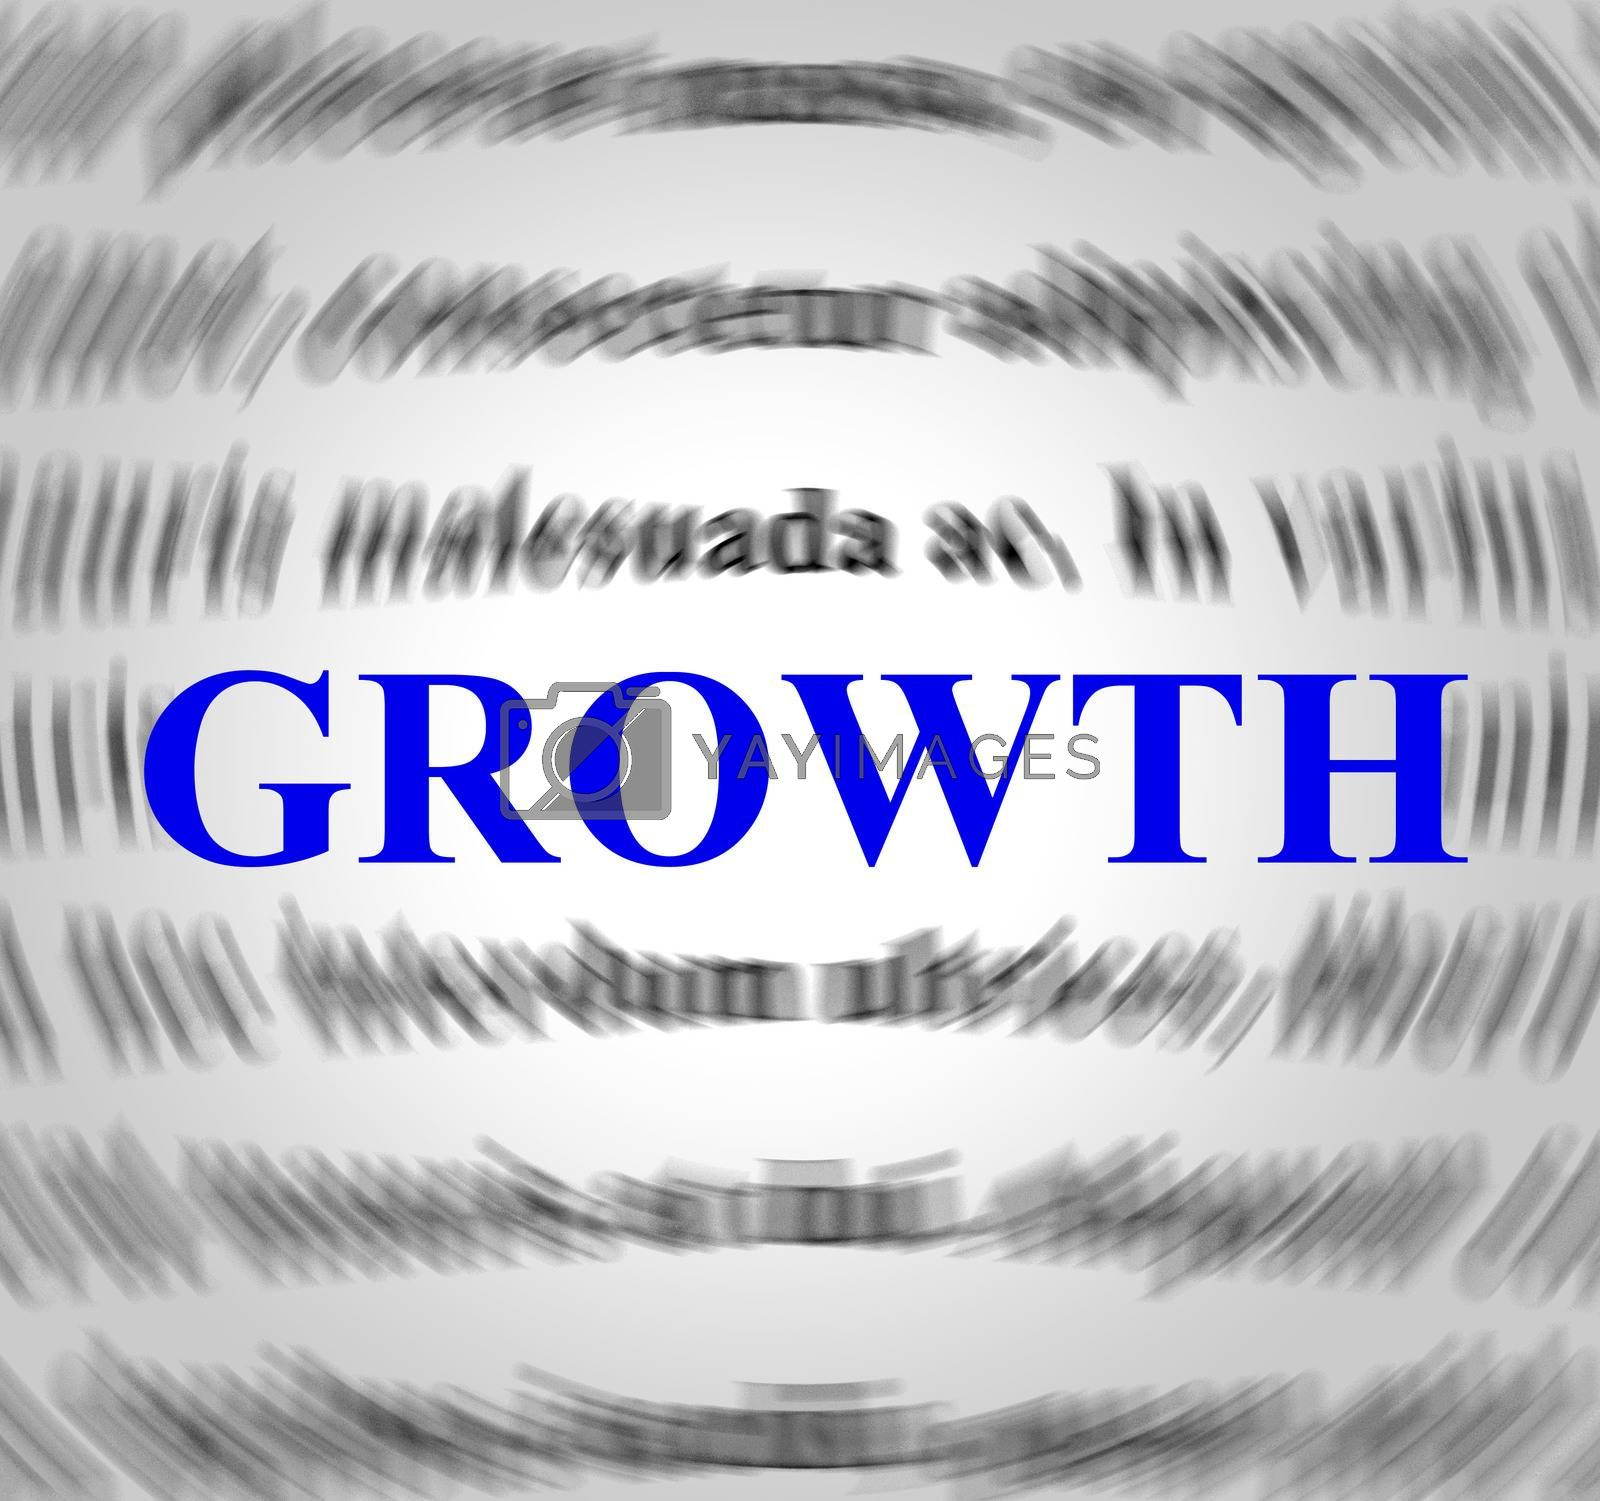 Growth Definition Means Means Improvement And Develop by stuartmiles